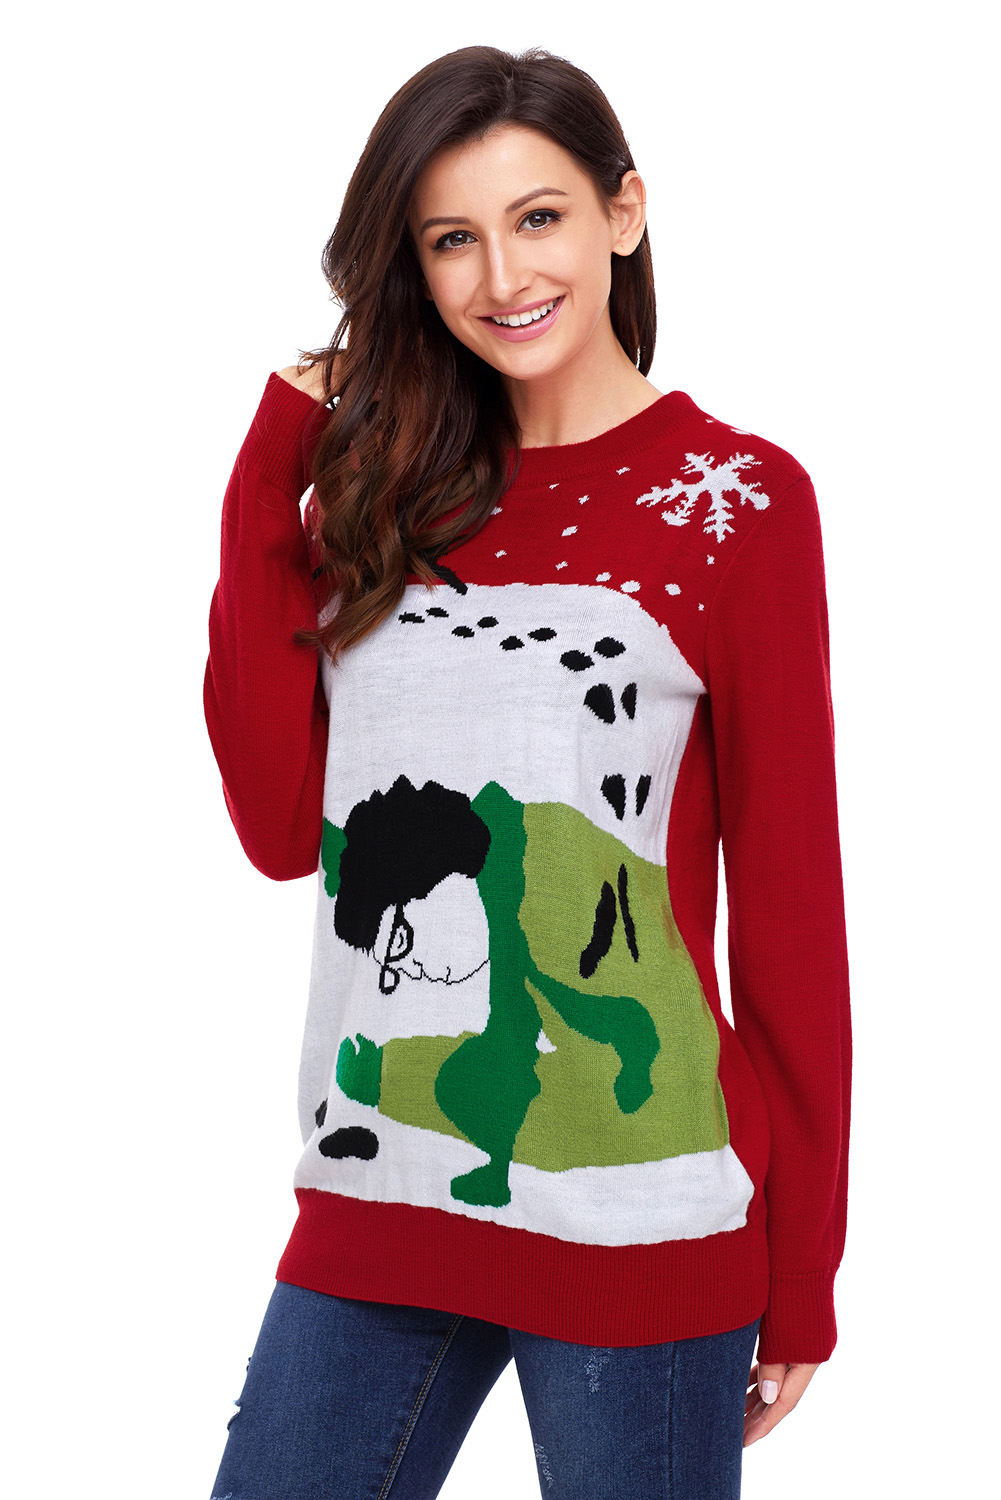 red got run over by reindeer christmas sweater item no lc27810 3 - Reindeer Christmas Sweater